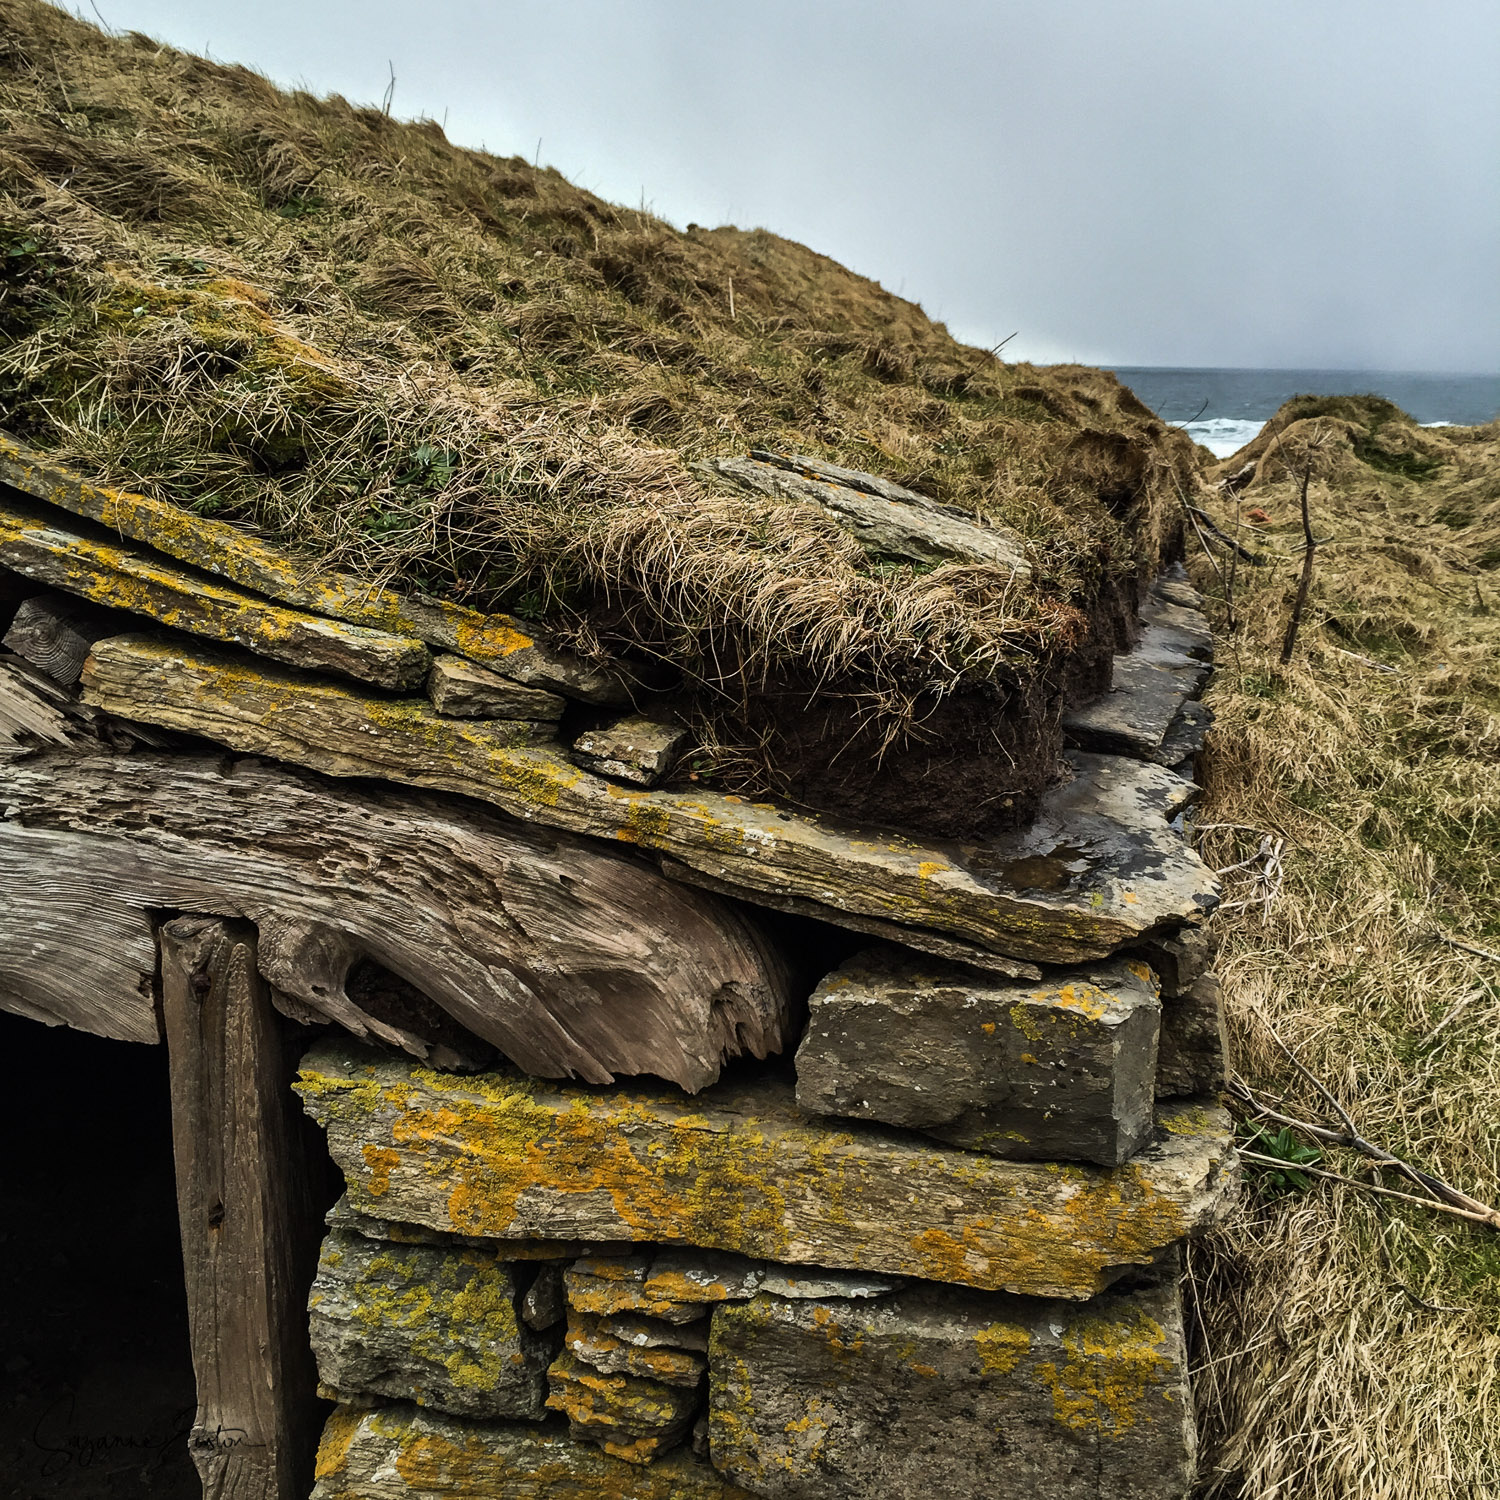 The roofline of a fishermans hut at Marwick